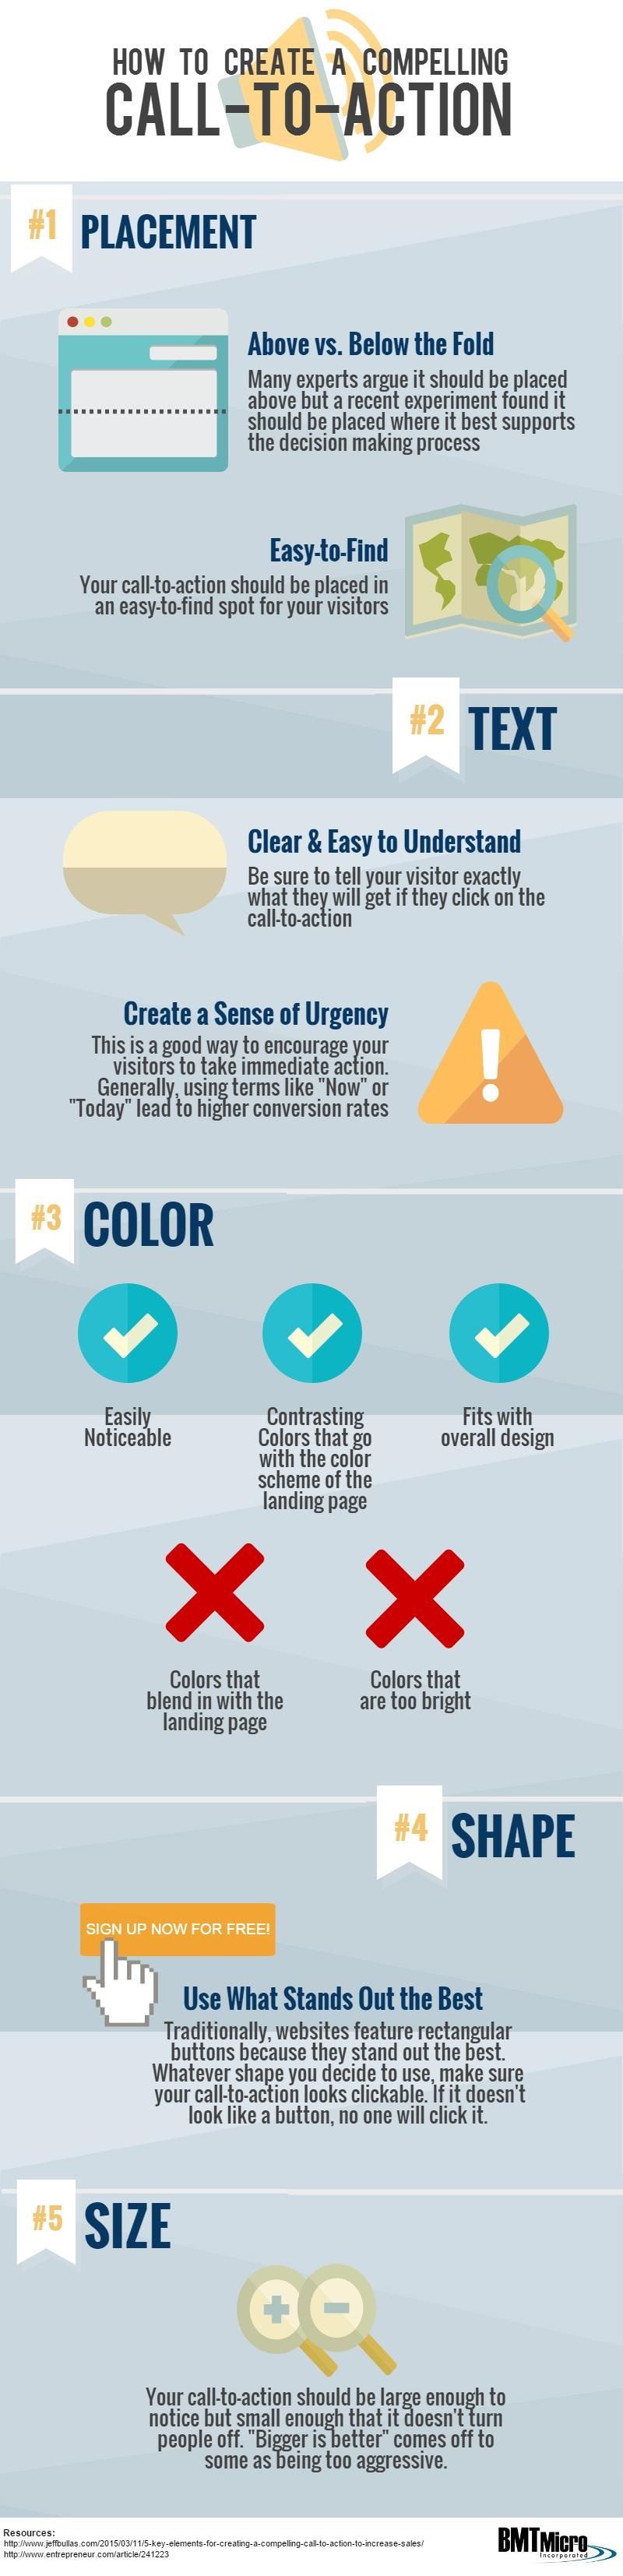 Call-to-Action Infographic (2)